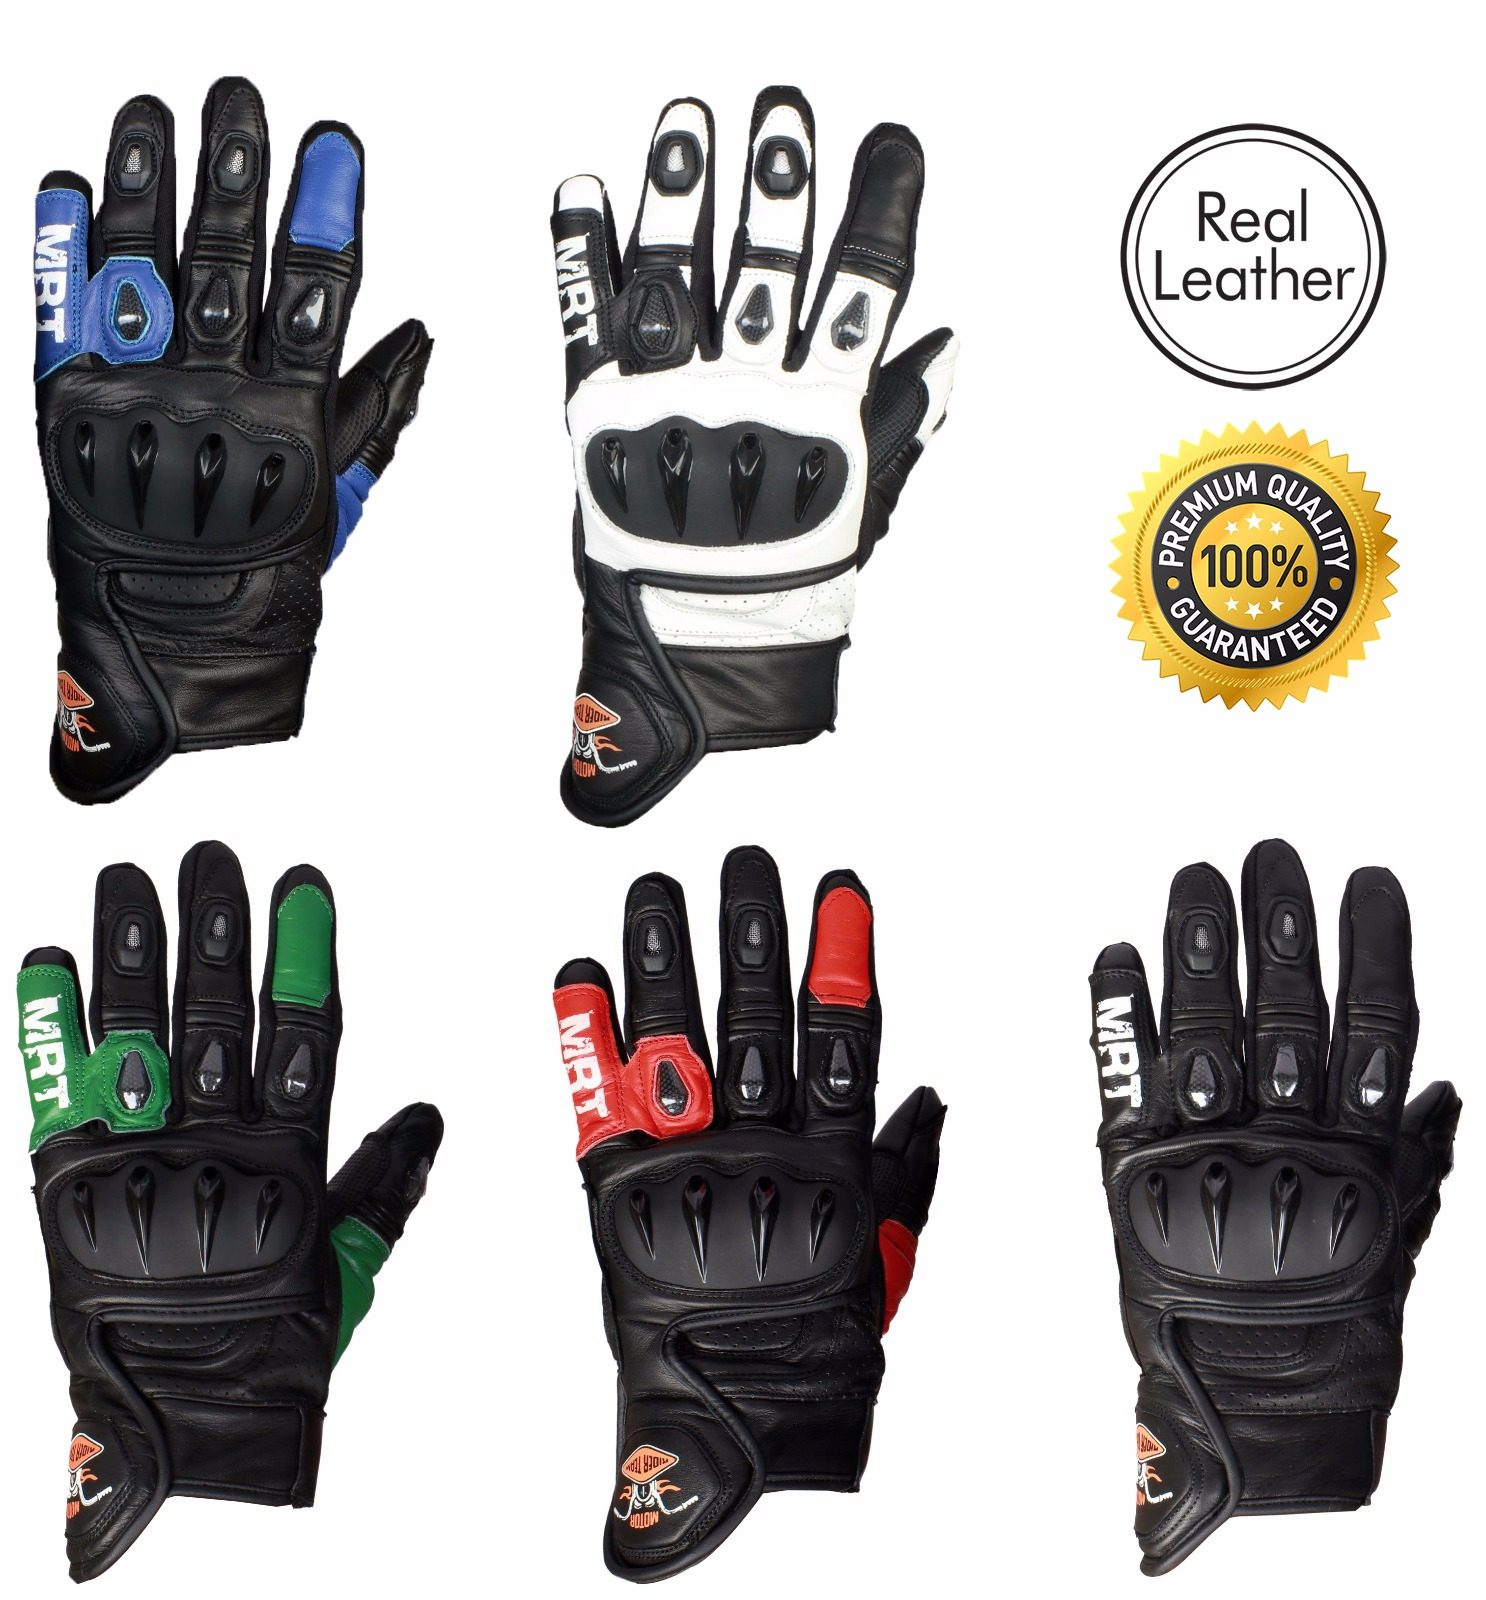 a19ff6184b15f MRT Premium Leather Motorcycle Gloves - LIGHTNING - The Rider Team